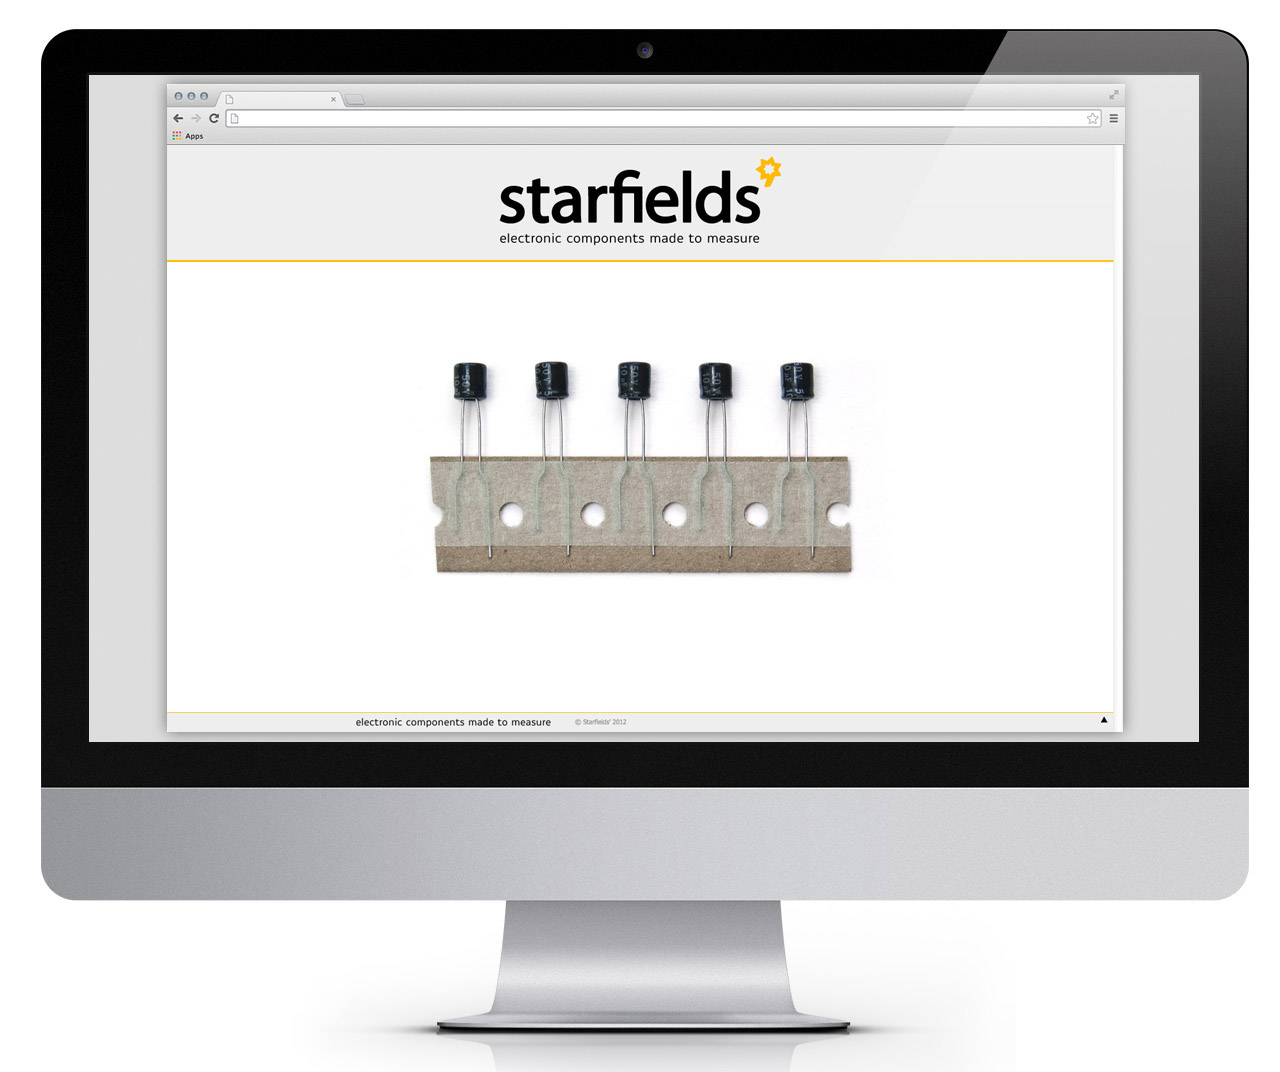 Starfields', website